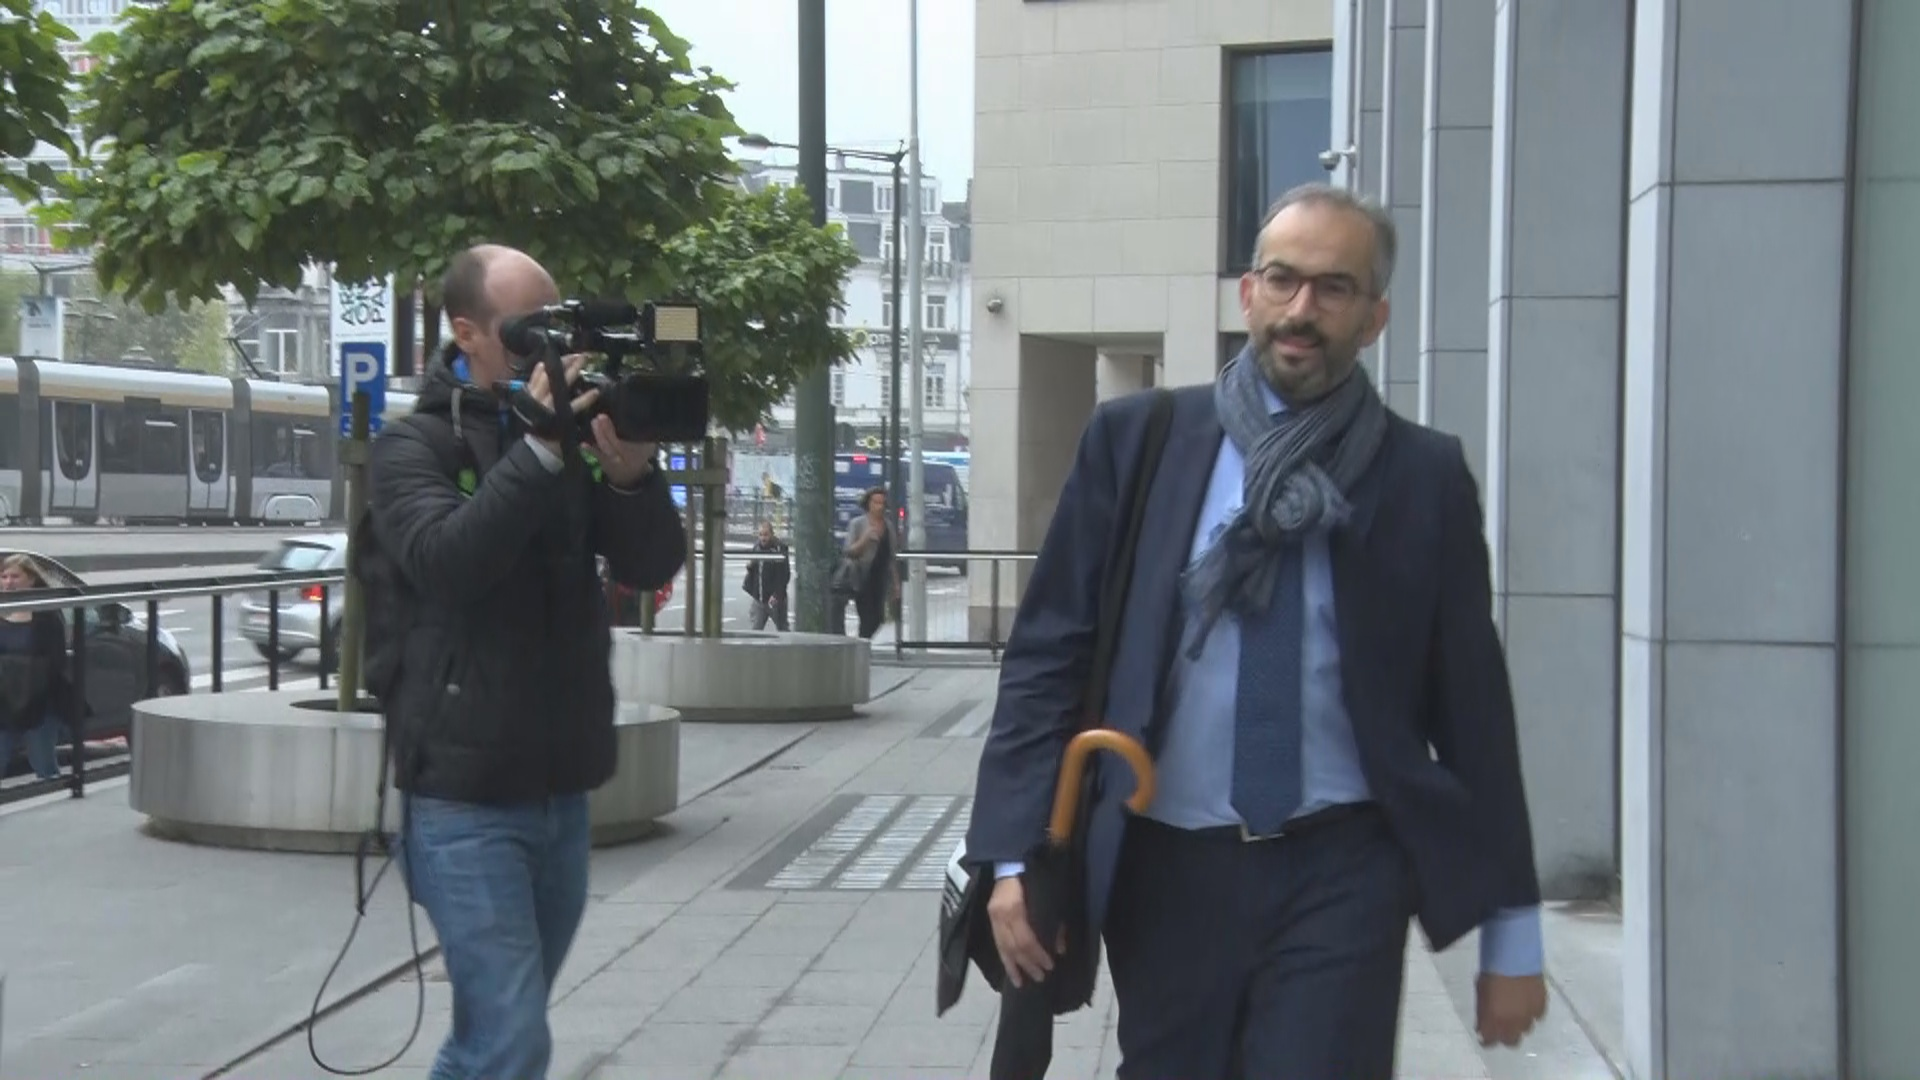 Belgian court postpones hearing against judge overseeing independence case until September 25